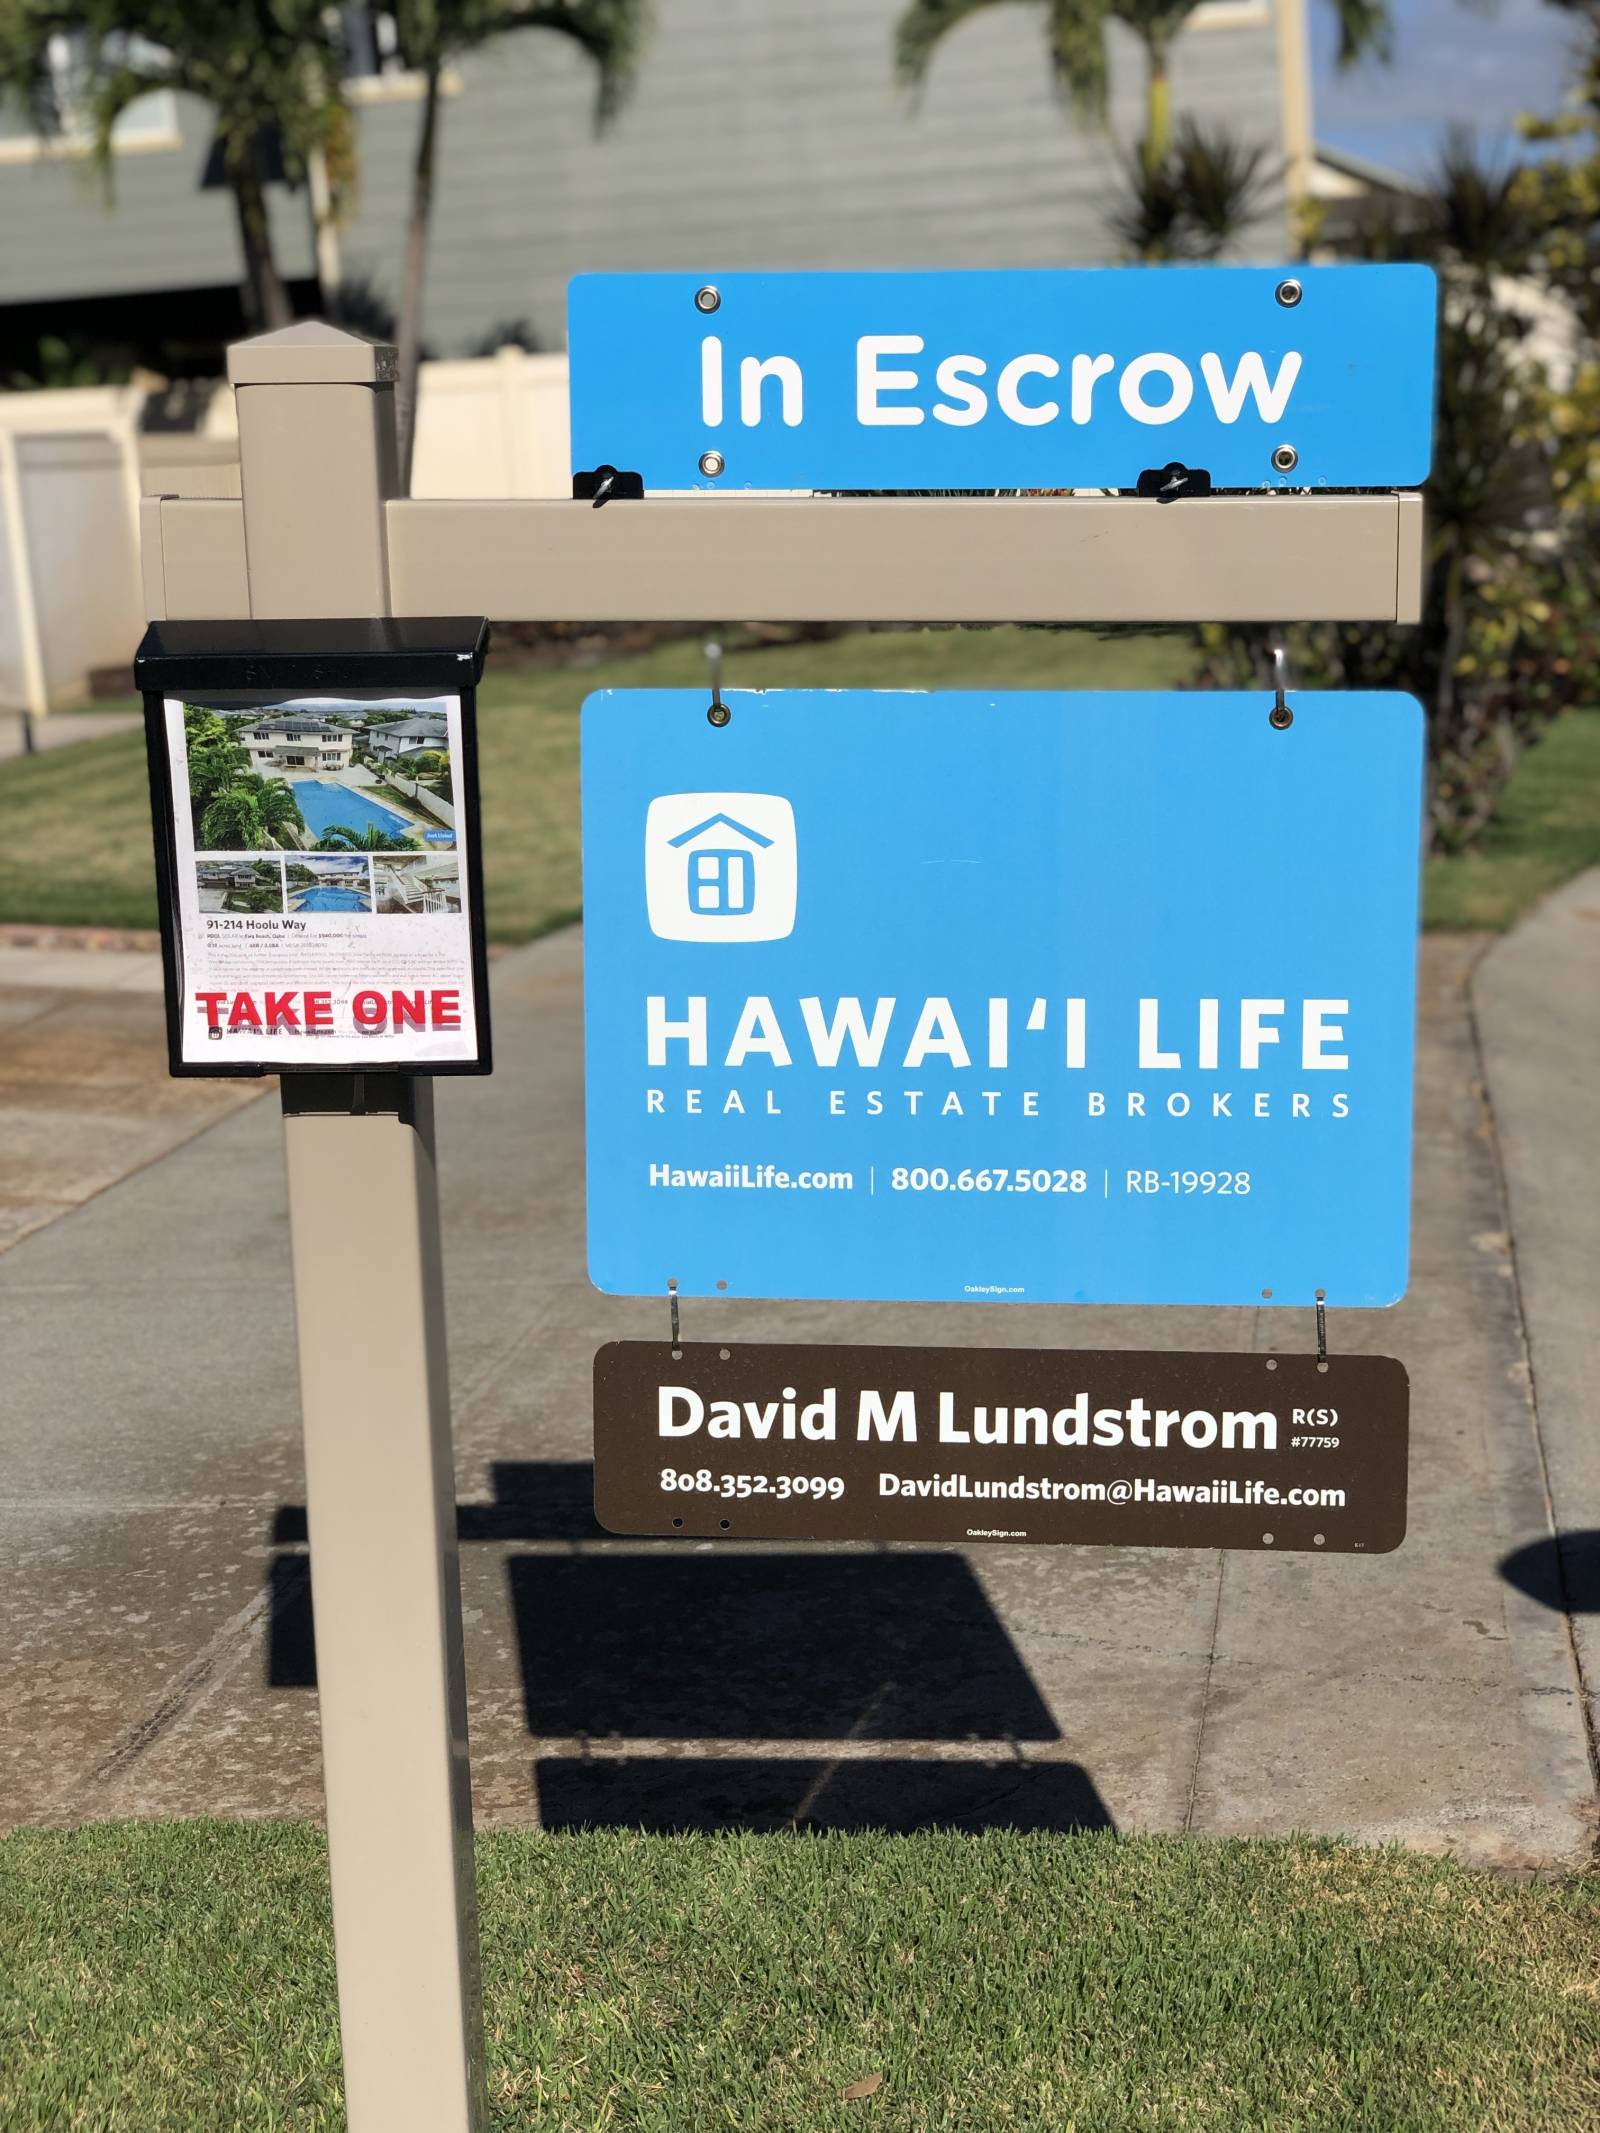 Hawaii Housing Market - Get Ready for Another Bubble Burst? - Hawaii